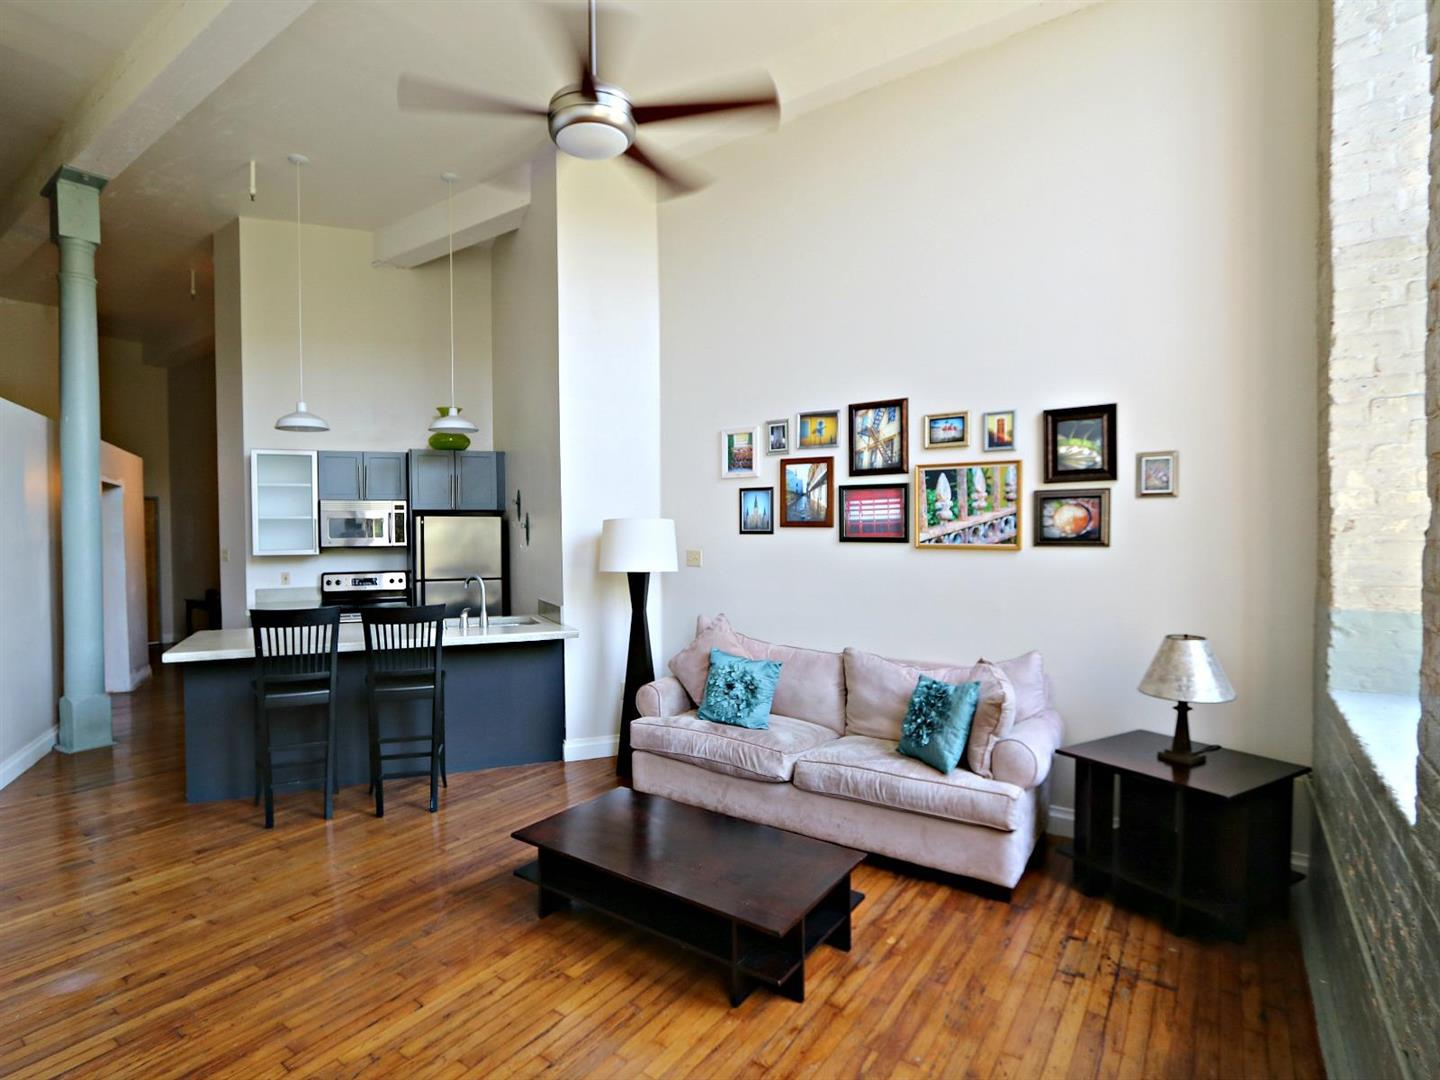 287CottonMillCondos,toKitchen.jpg